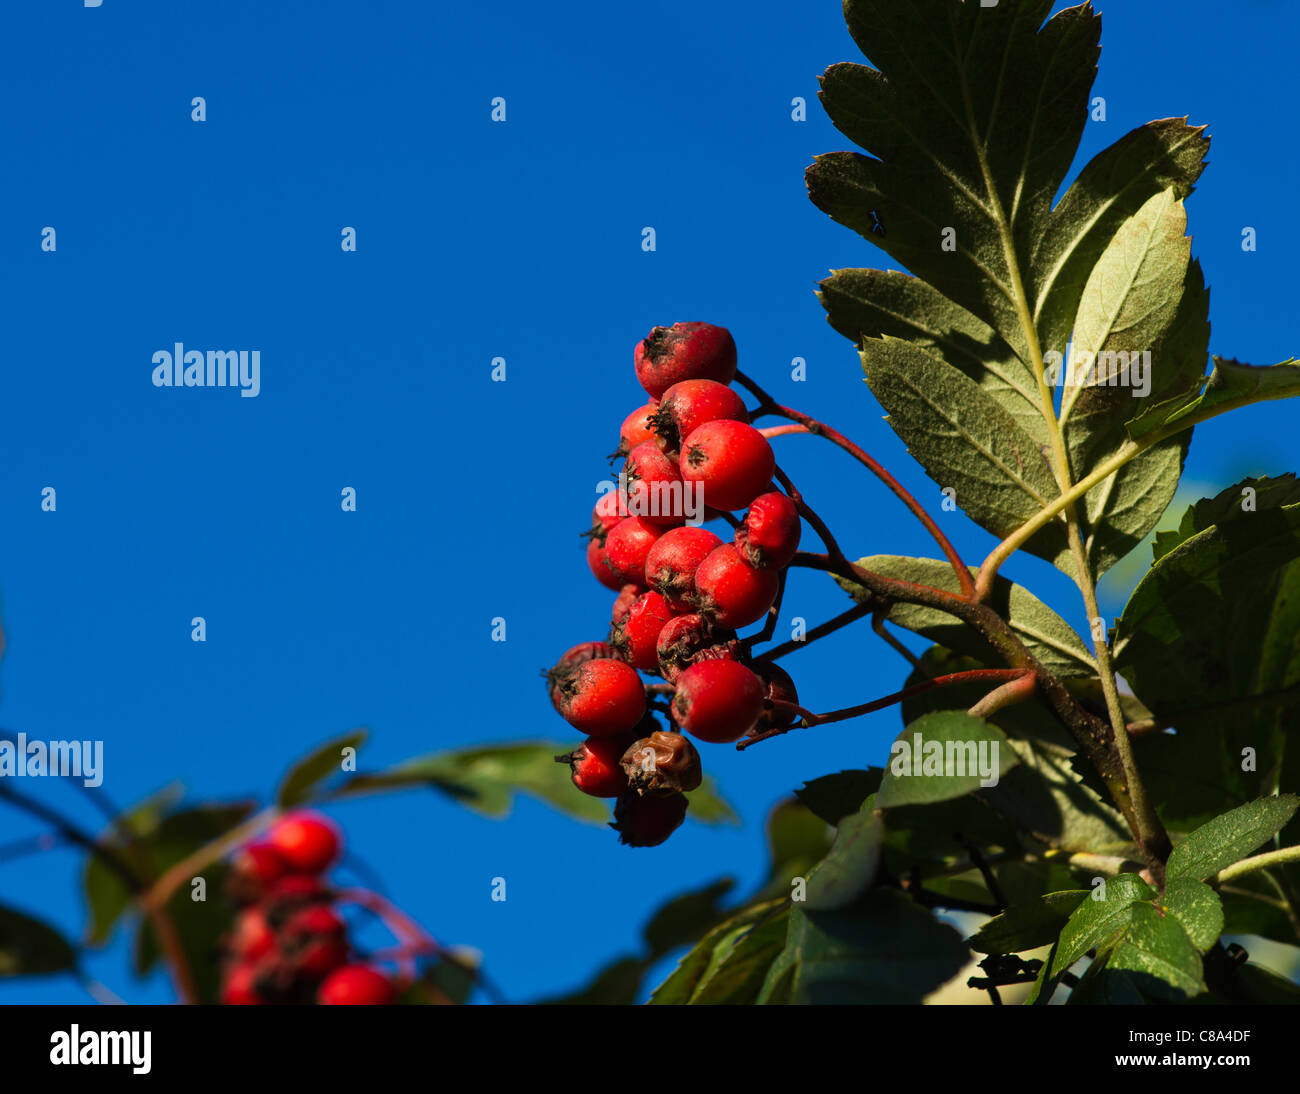 The hawthorn tree with sun lighted green leaves against a deep blue sky. Contrast of green, blue and red - Stock Image